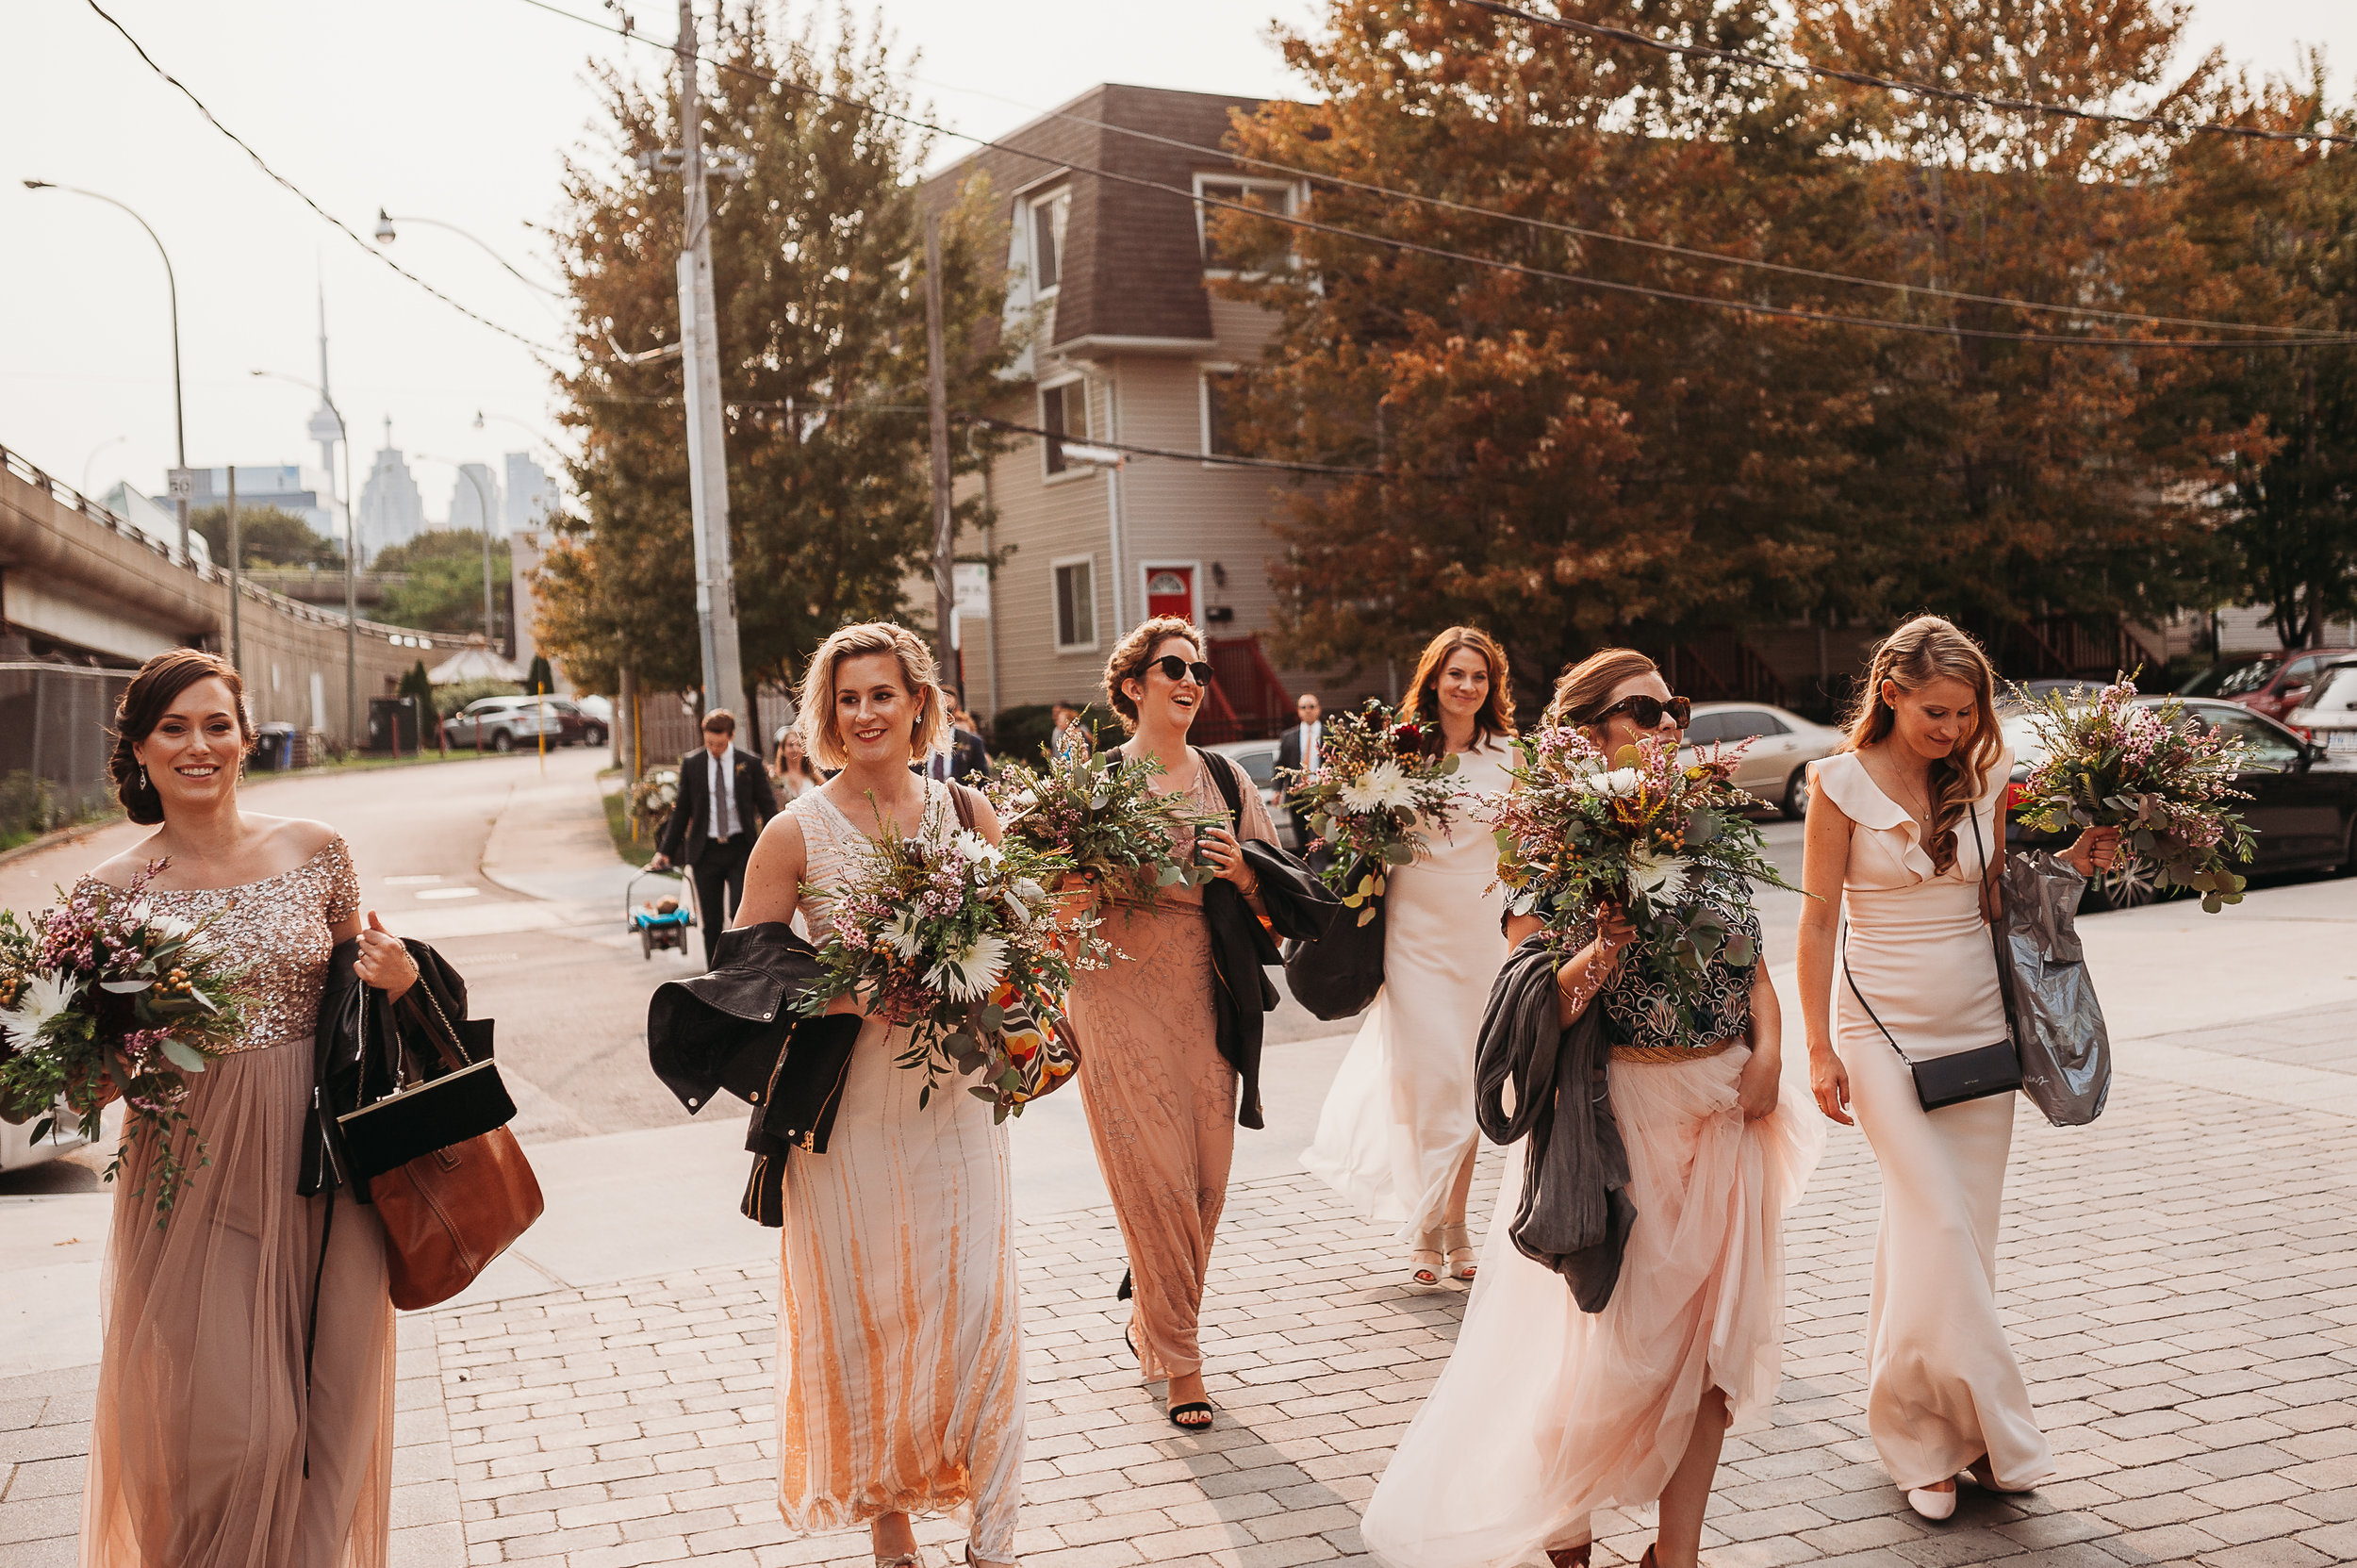 bridal-party-walking-to-portraits-toronto-rustic-boho-airship37-wedding-by-willow-birch-photo-toronto-documentary-wedding-photographers.jpg